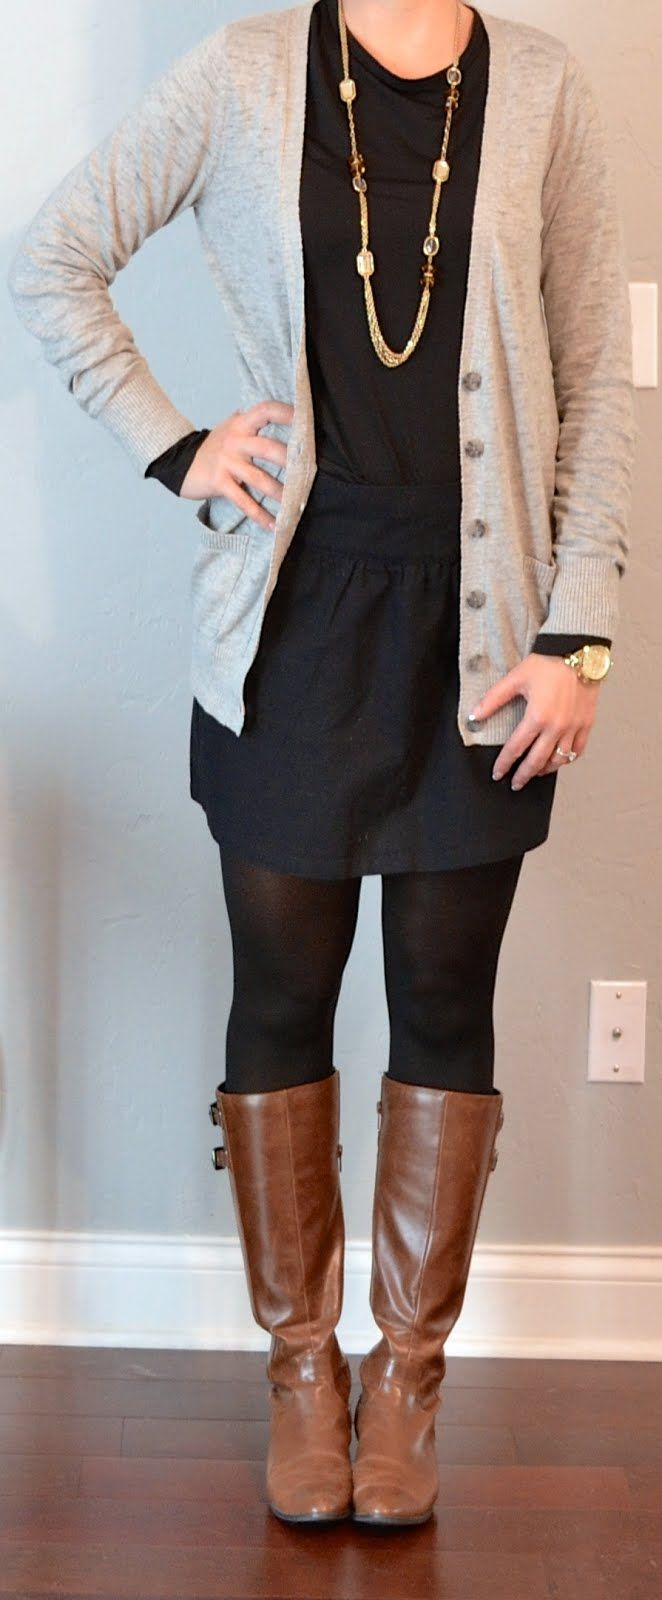 Long cardigan, dress, leggings, boots.